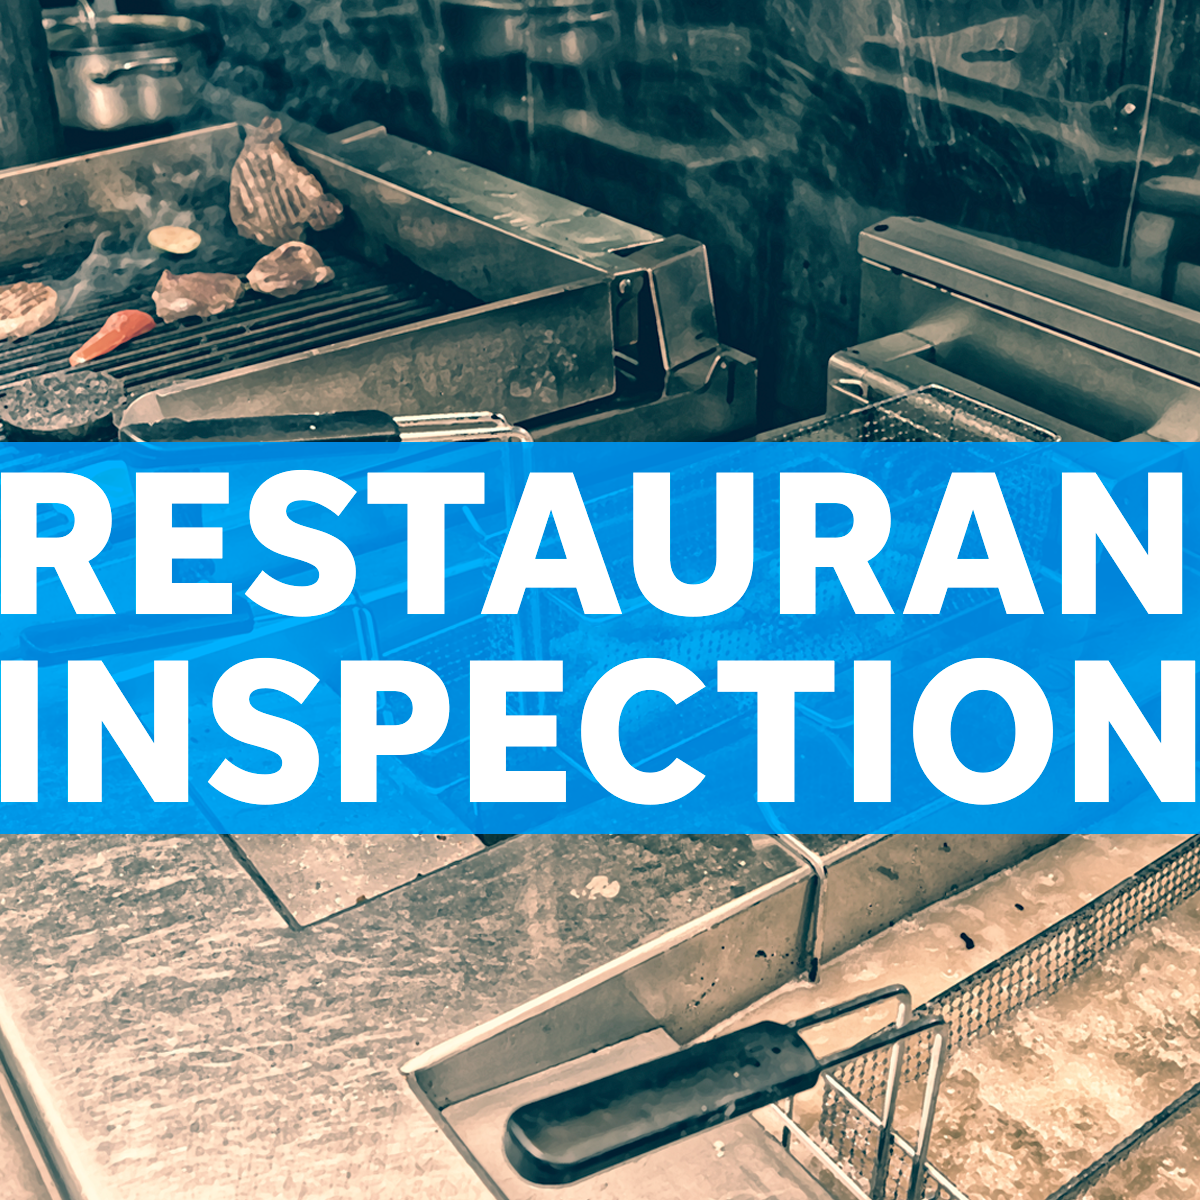 October: Rodents, roaches and dishes washed in the mop sink among restaurant woes